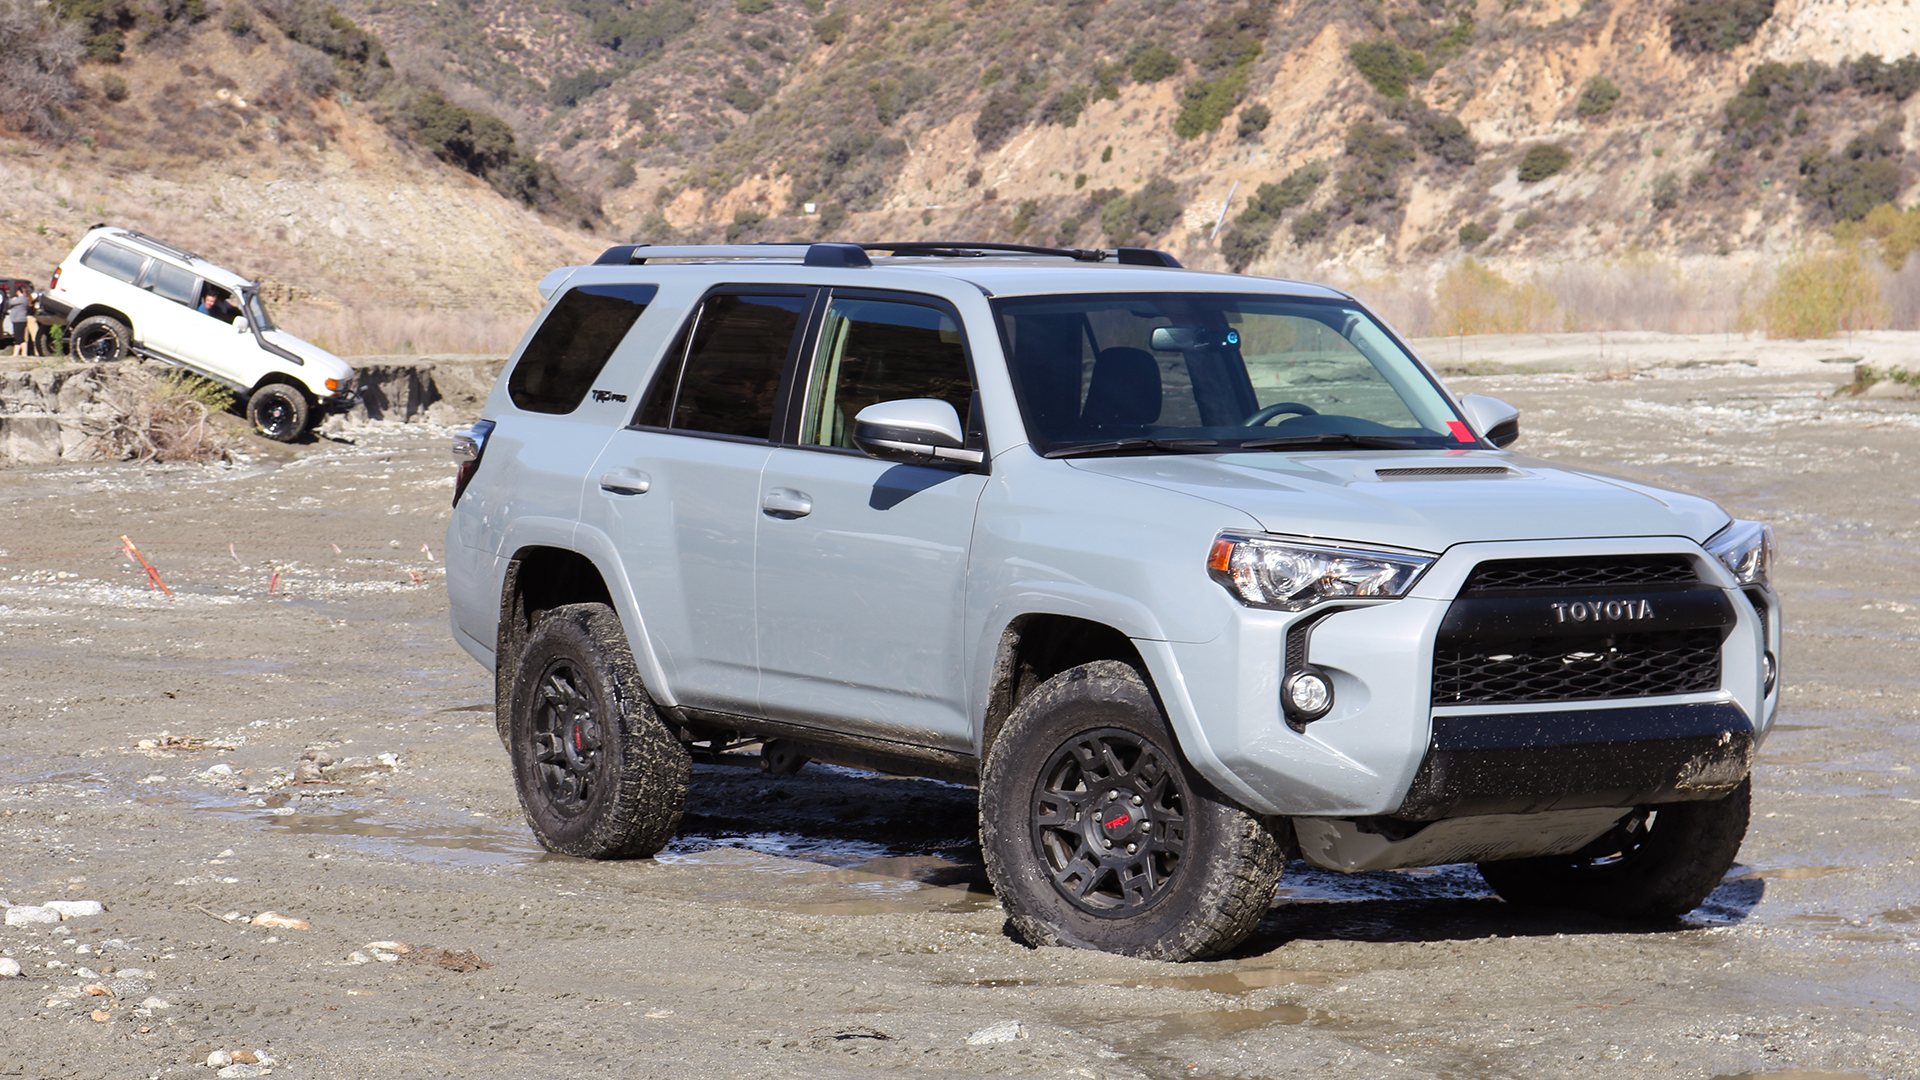 2017 Toyota 4Runner TRD Pro Review: Old-School Off-Road Goodness, Done Right